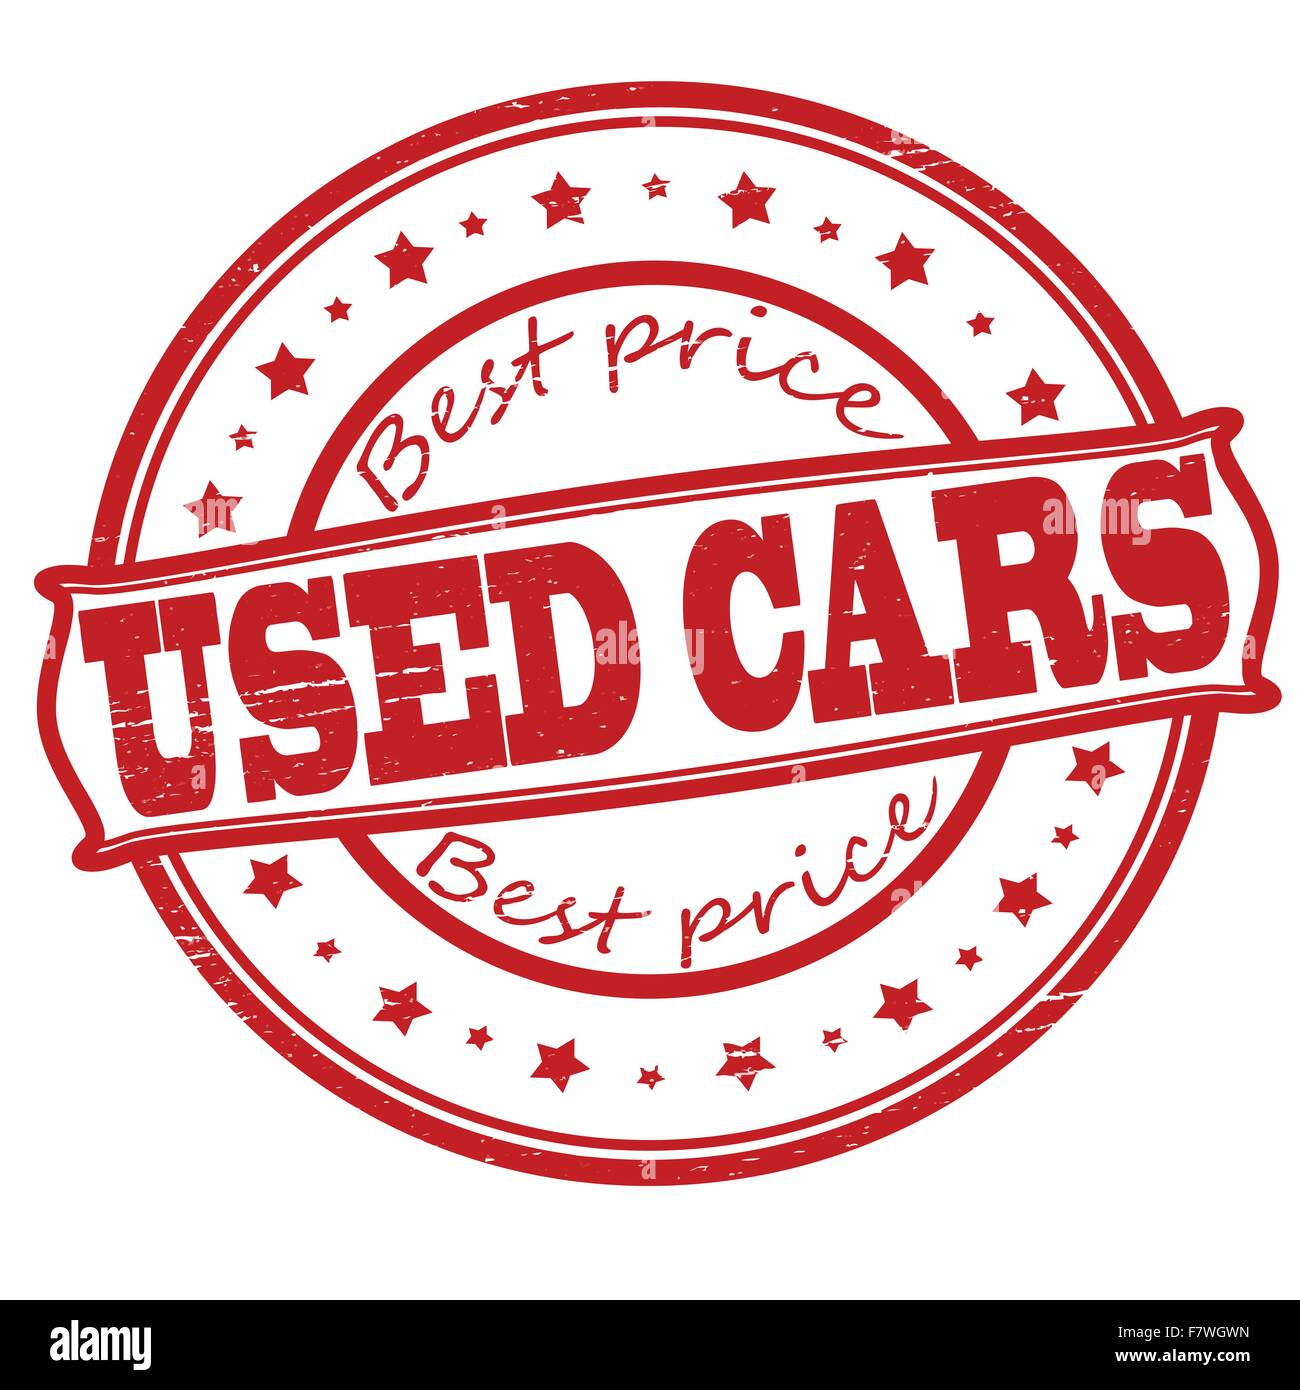 Used cars - Stock Vector